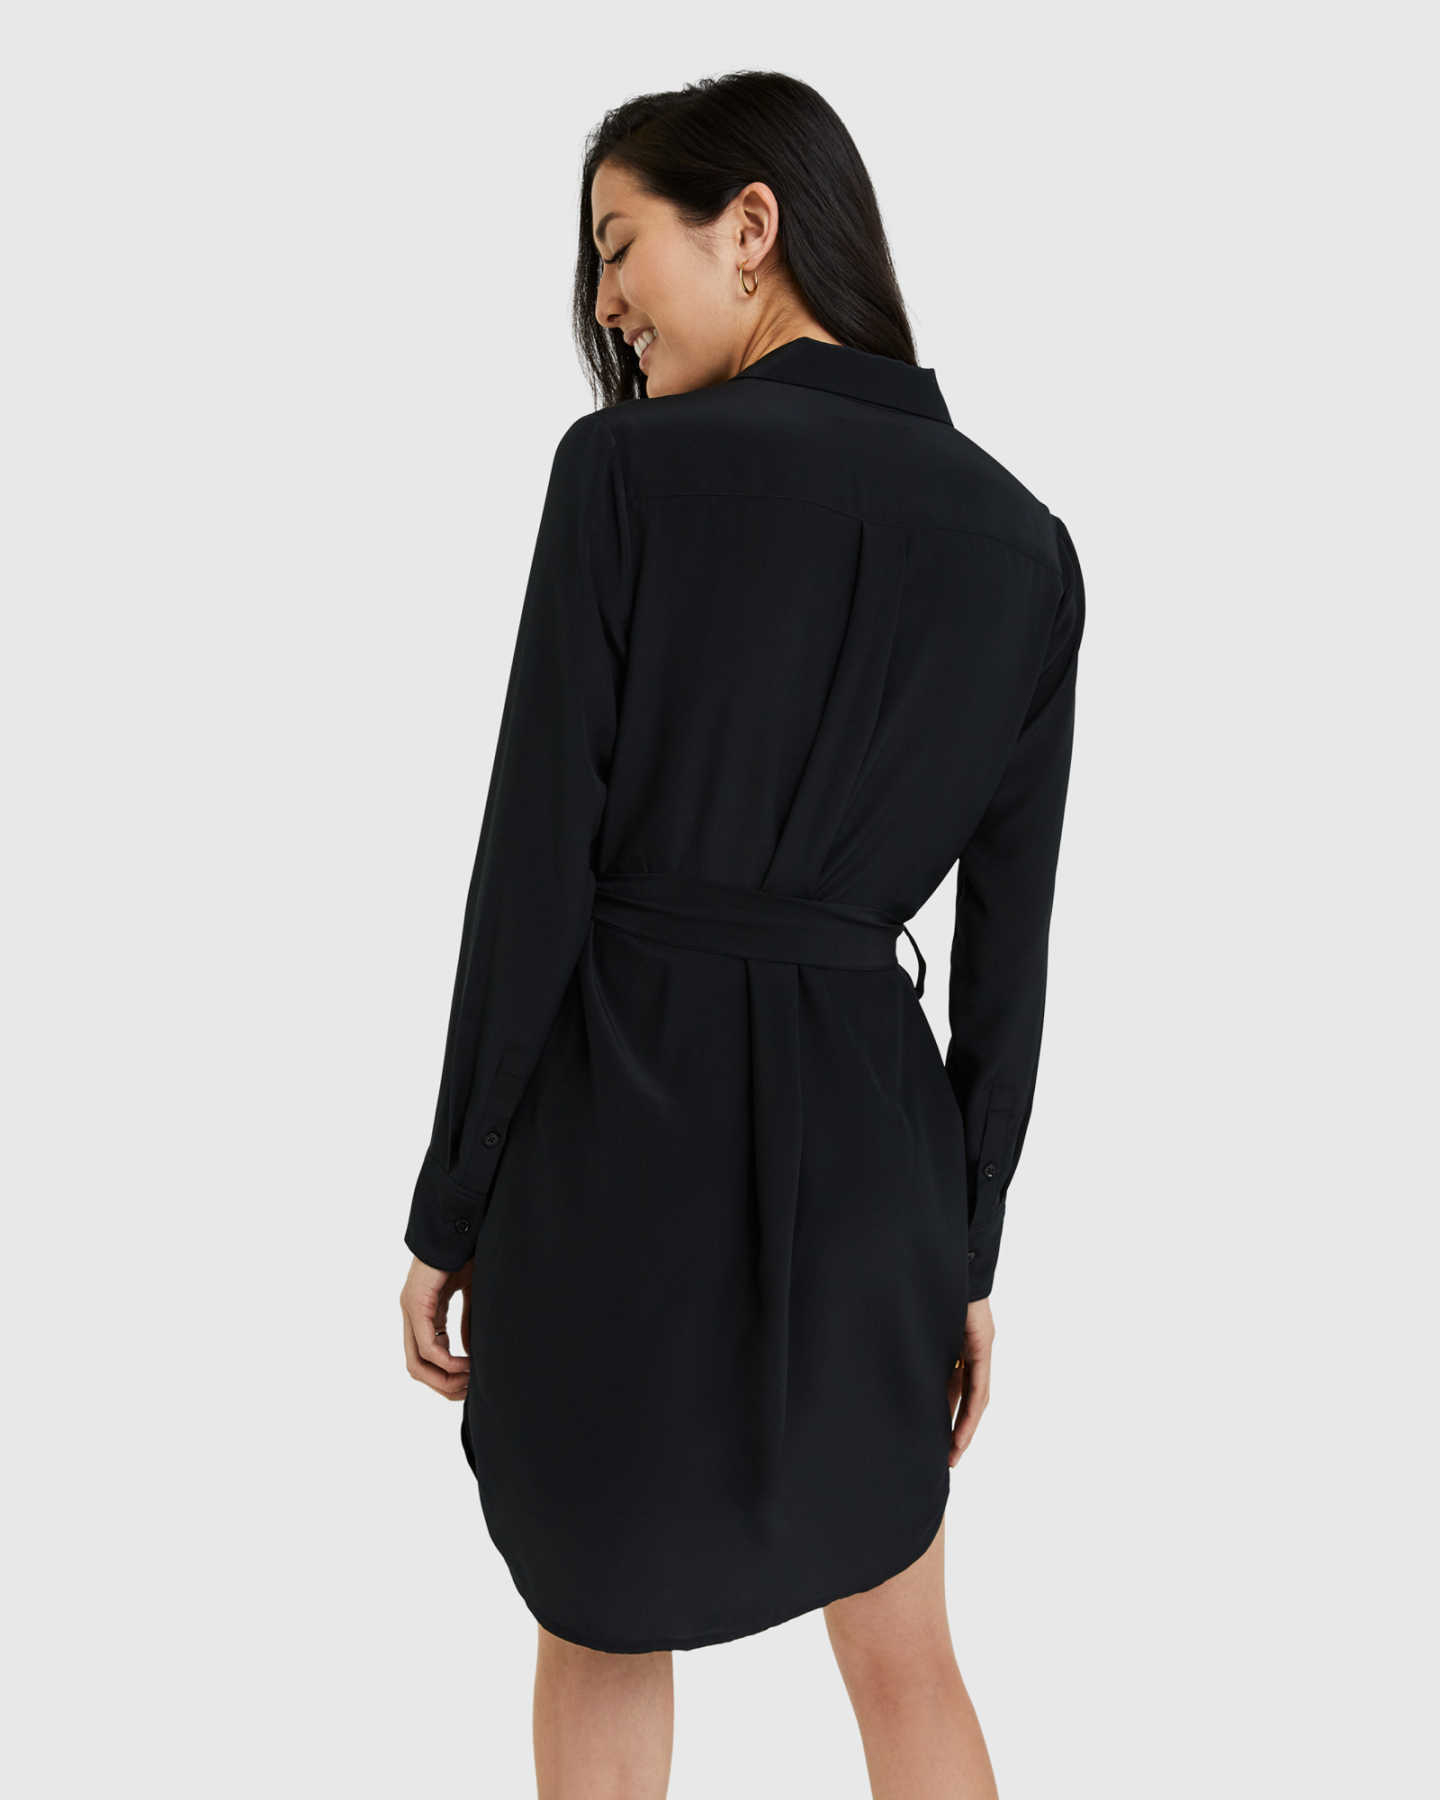 Woman wearing silk shirt dress in black from back